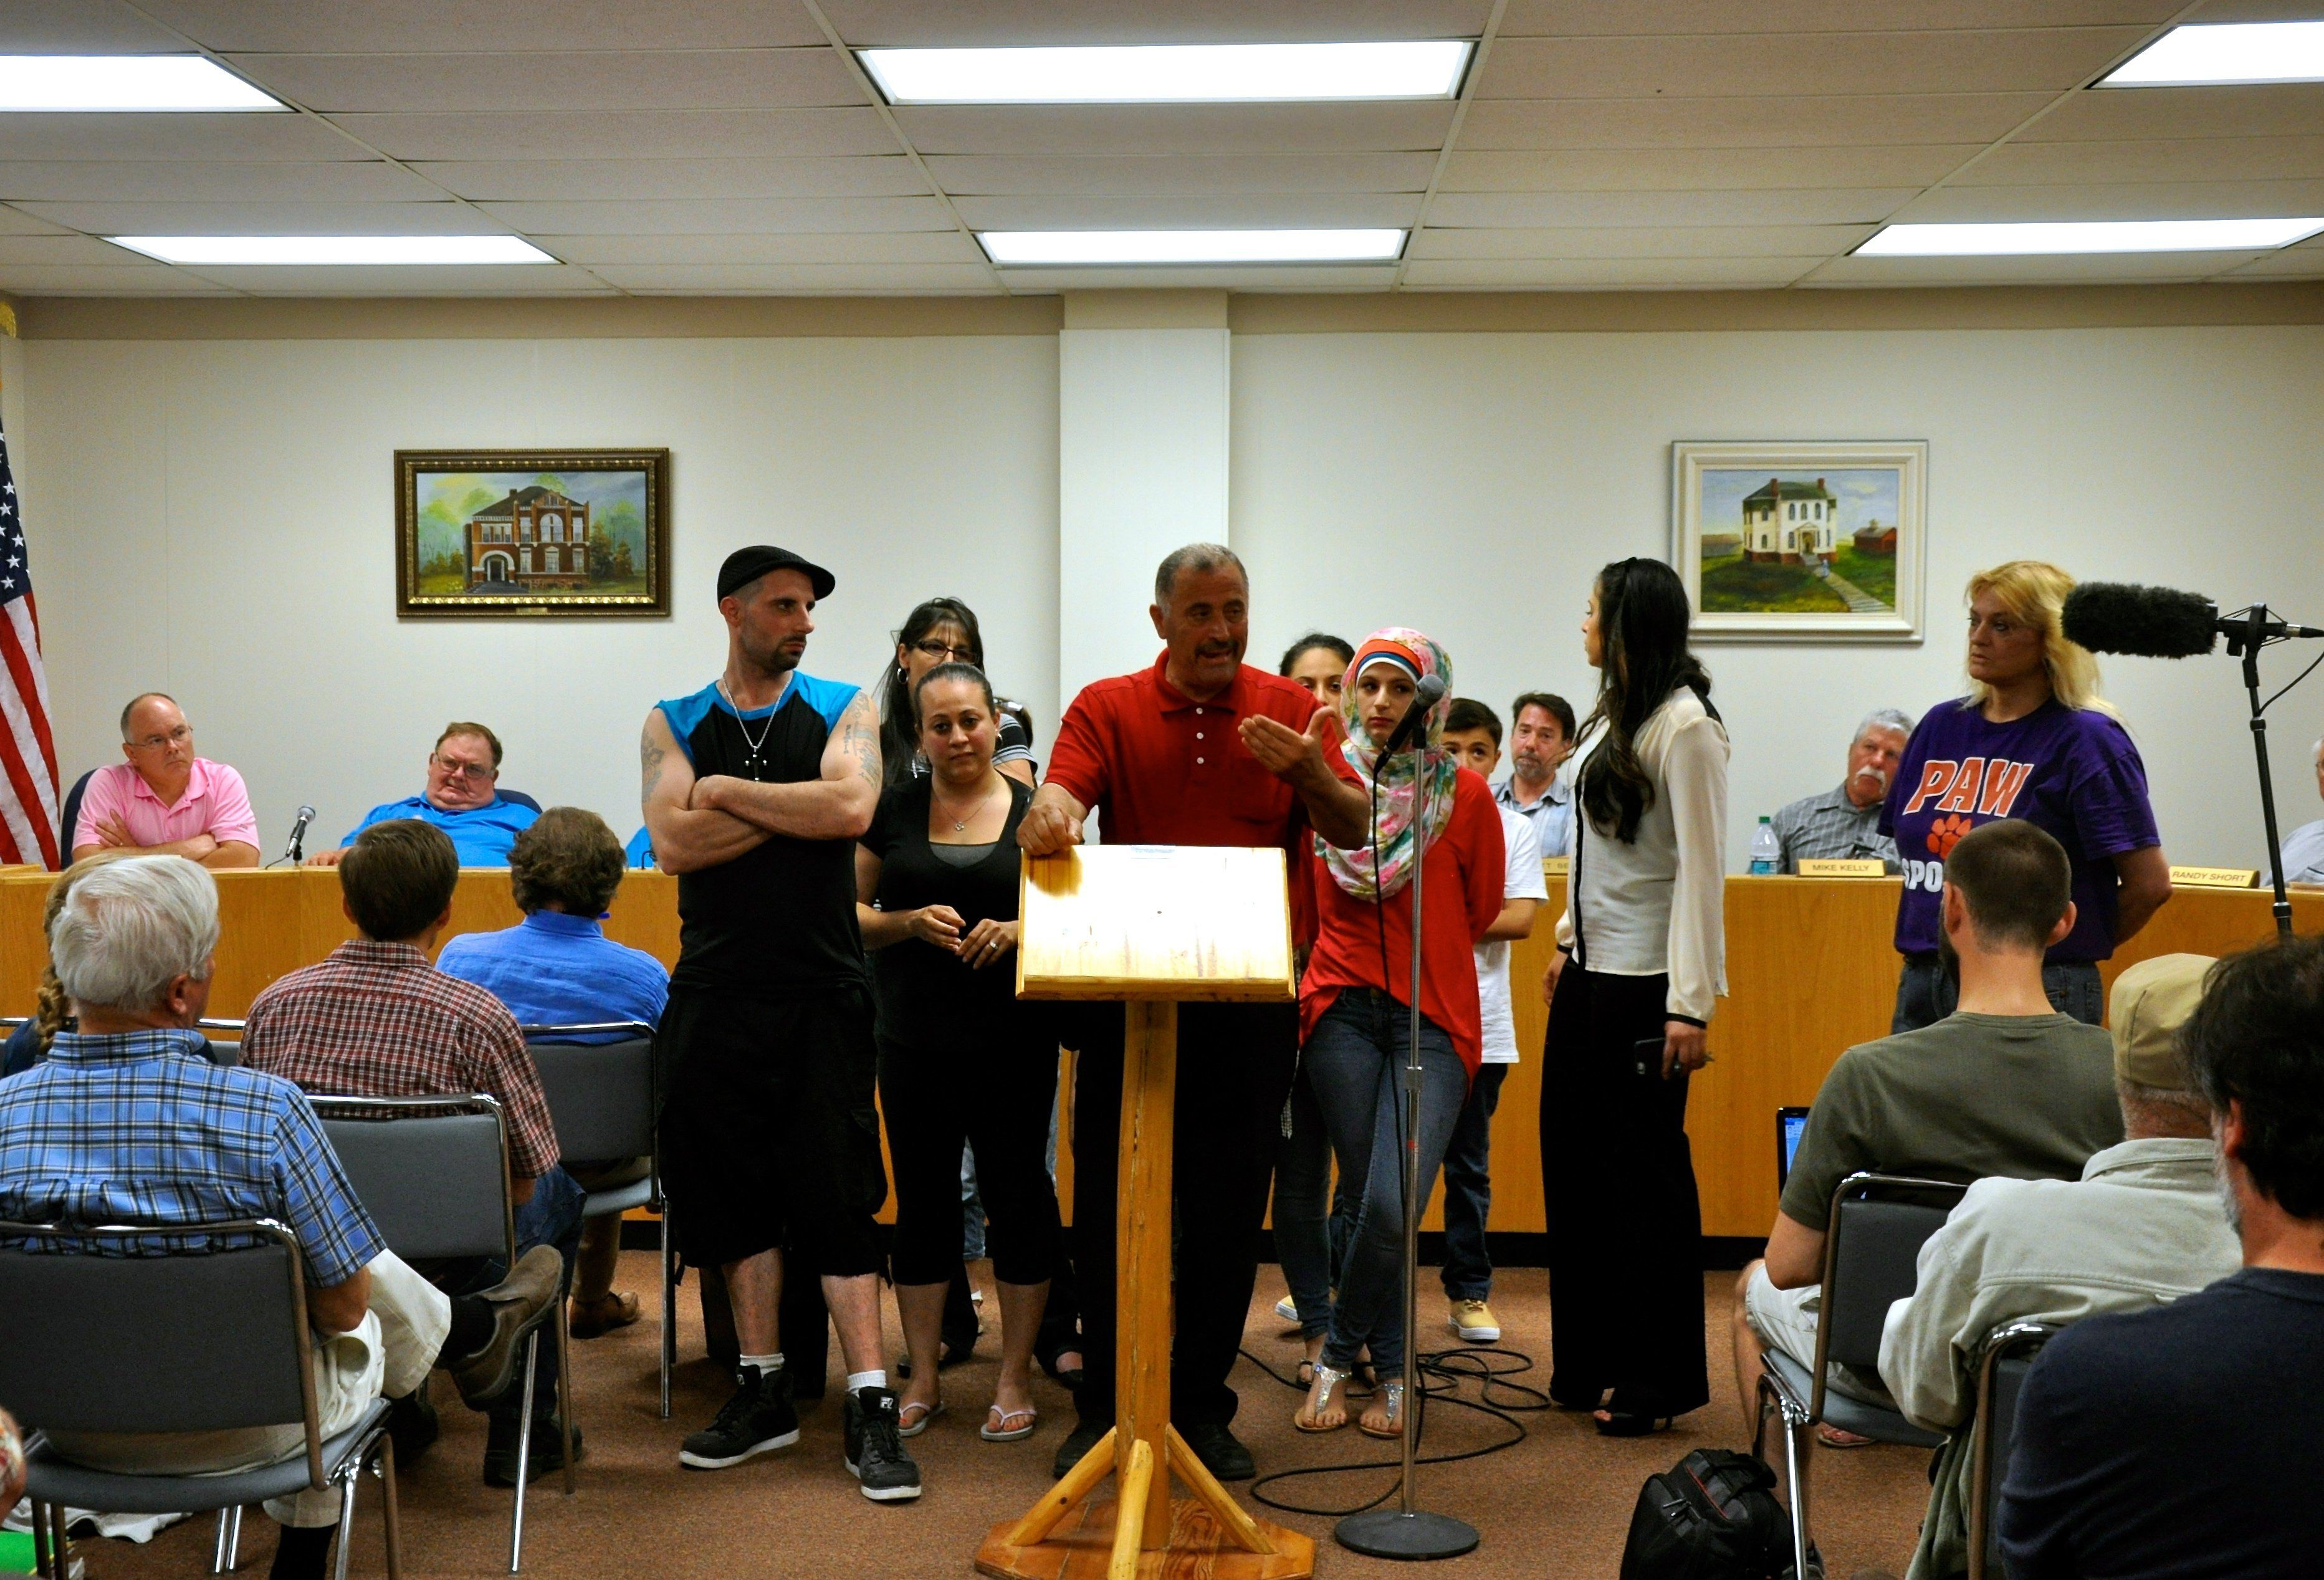 David Salha stands with his family and addresses concerns over his plan to build a summer youth camp on his property at the O